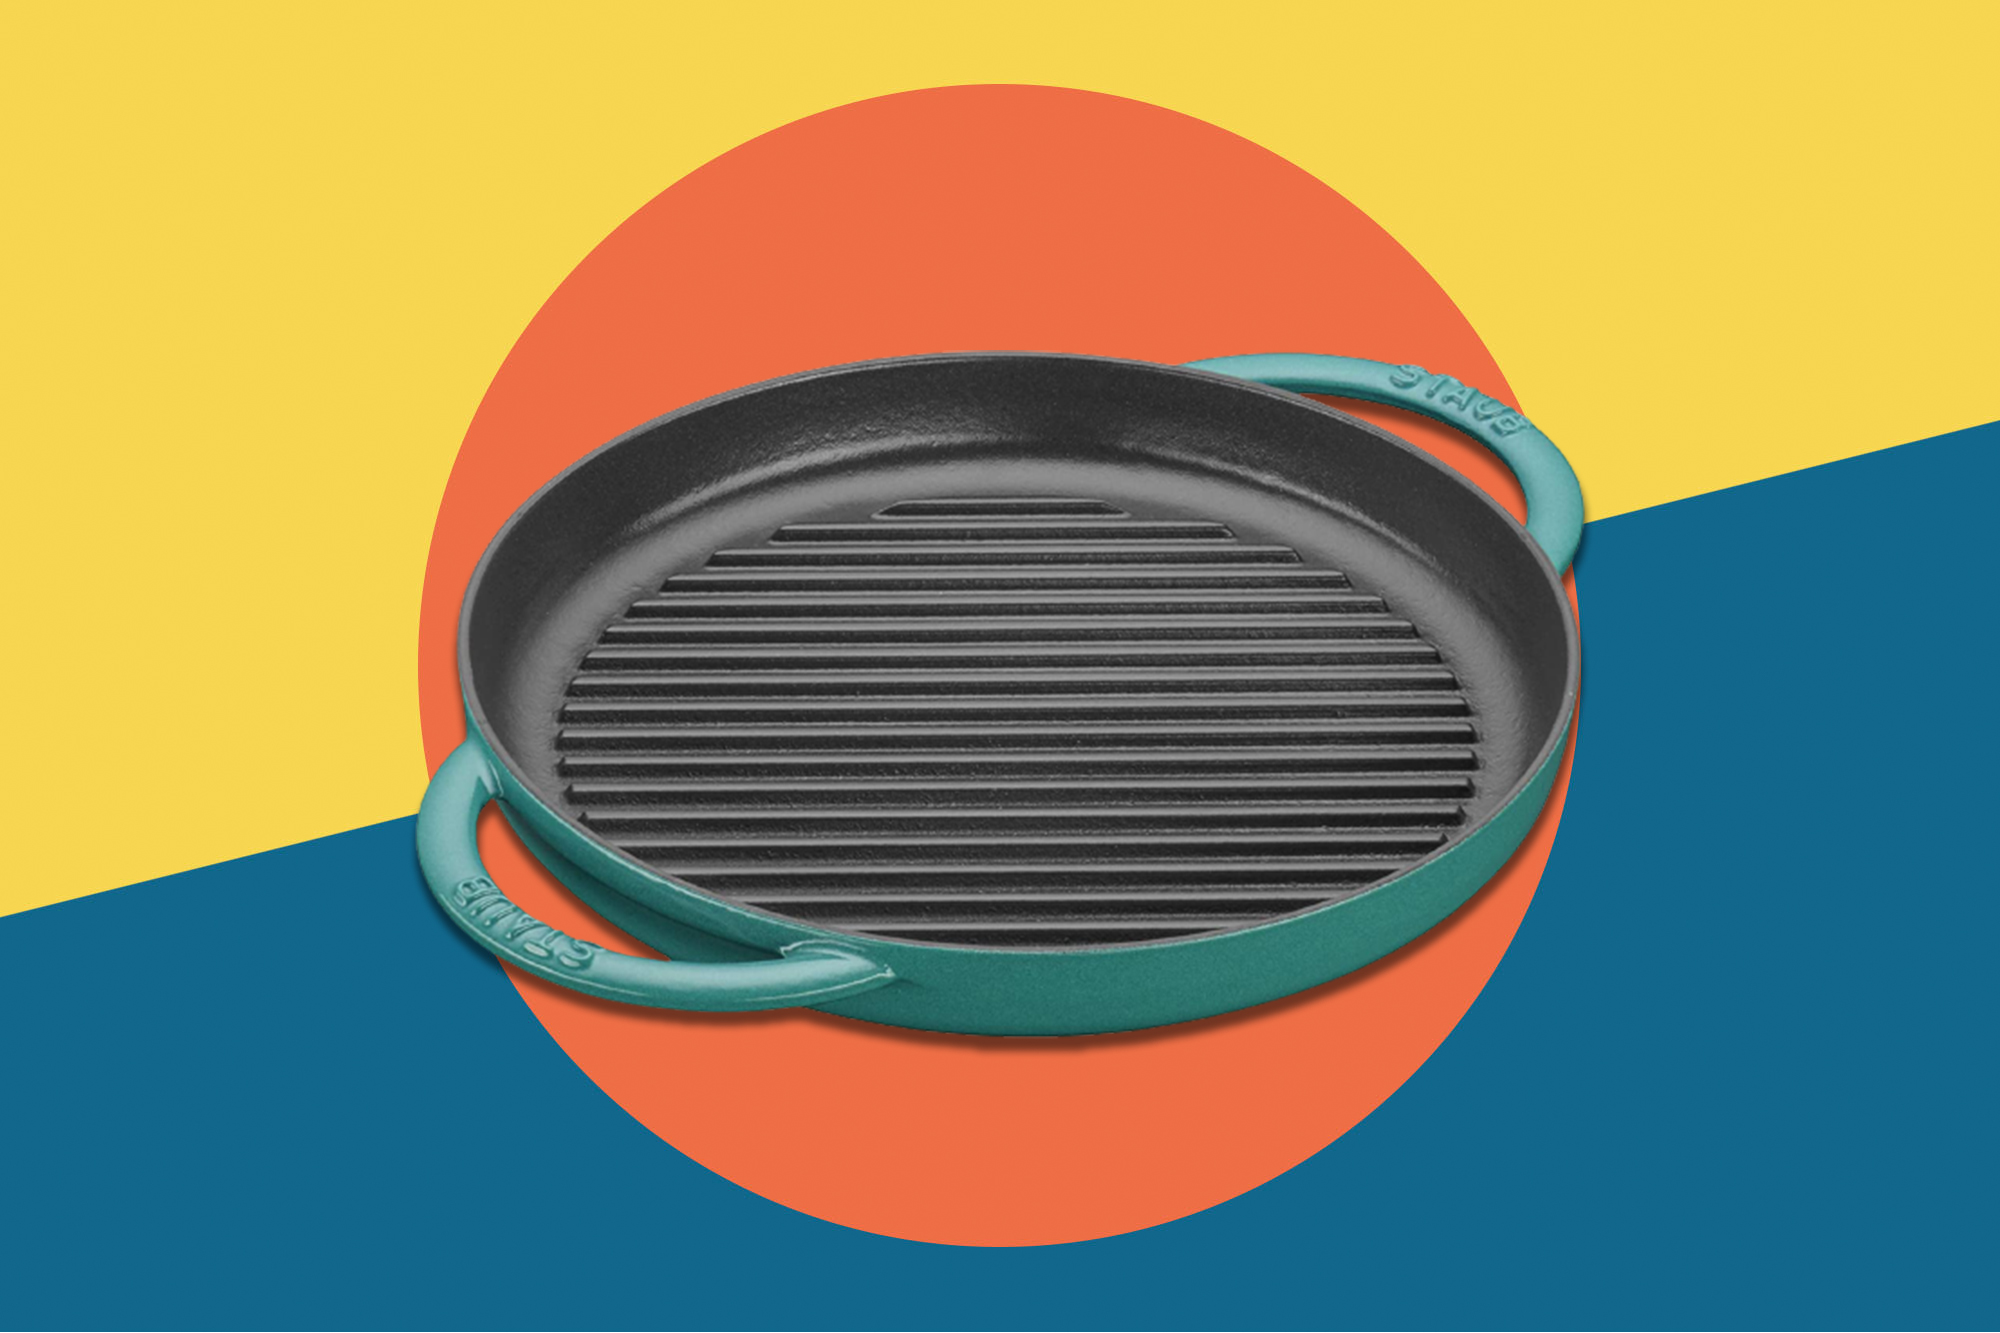 staub grill deal prime day